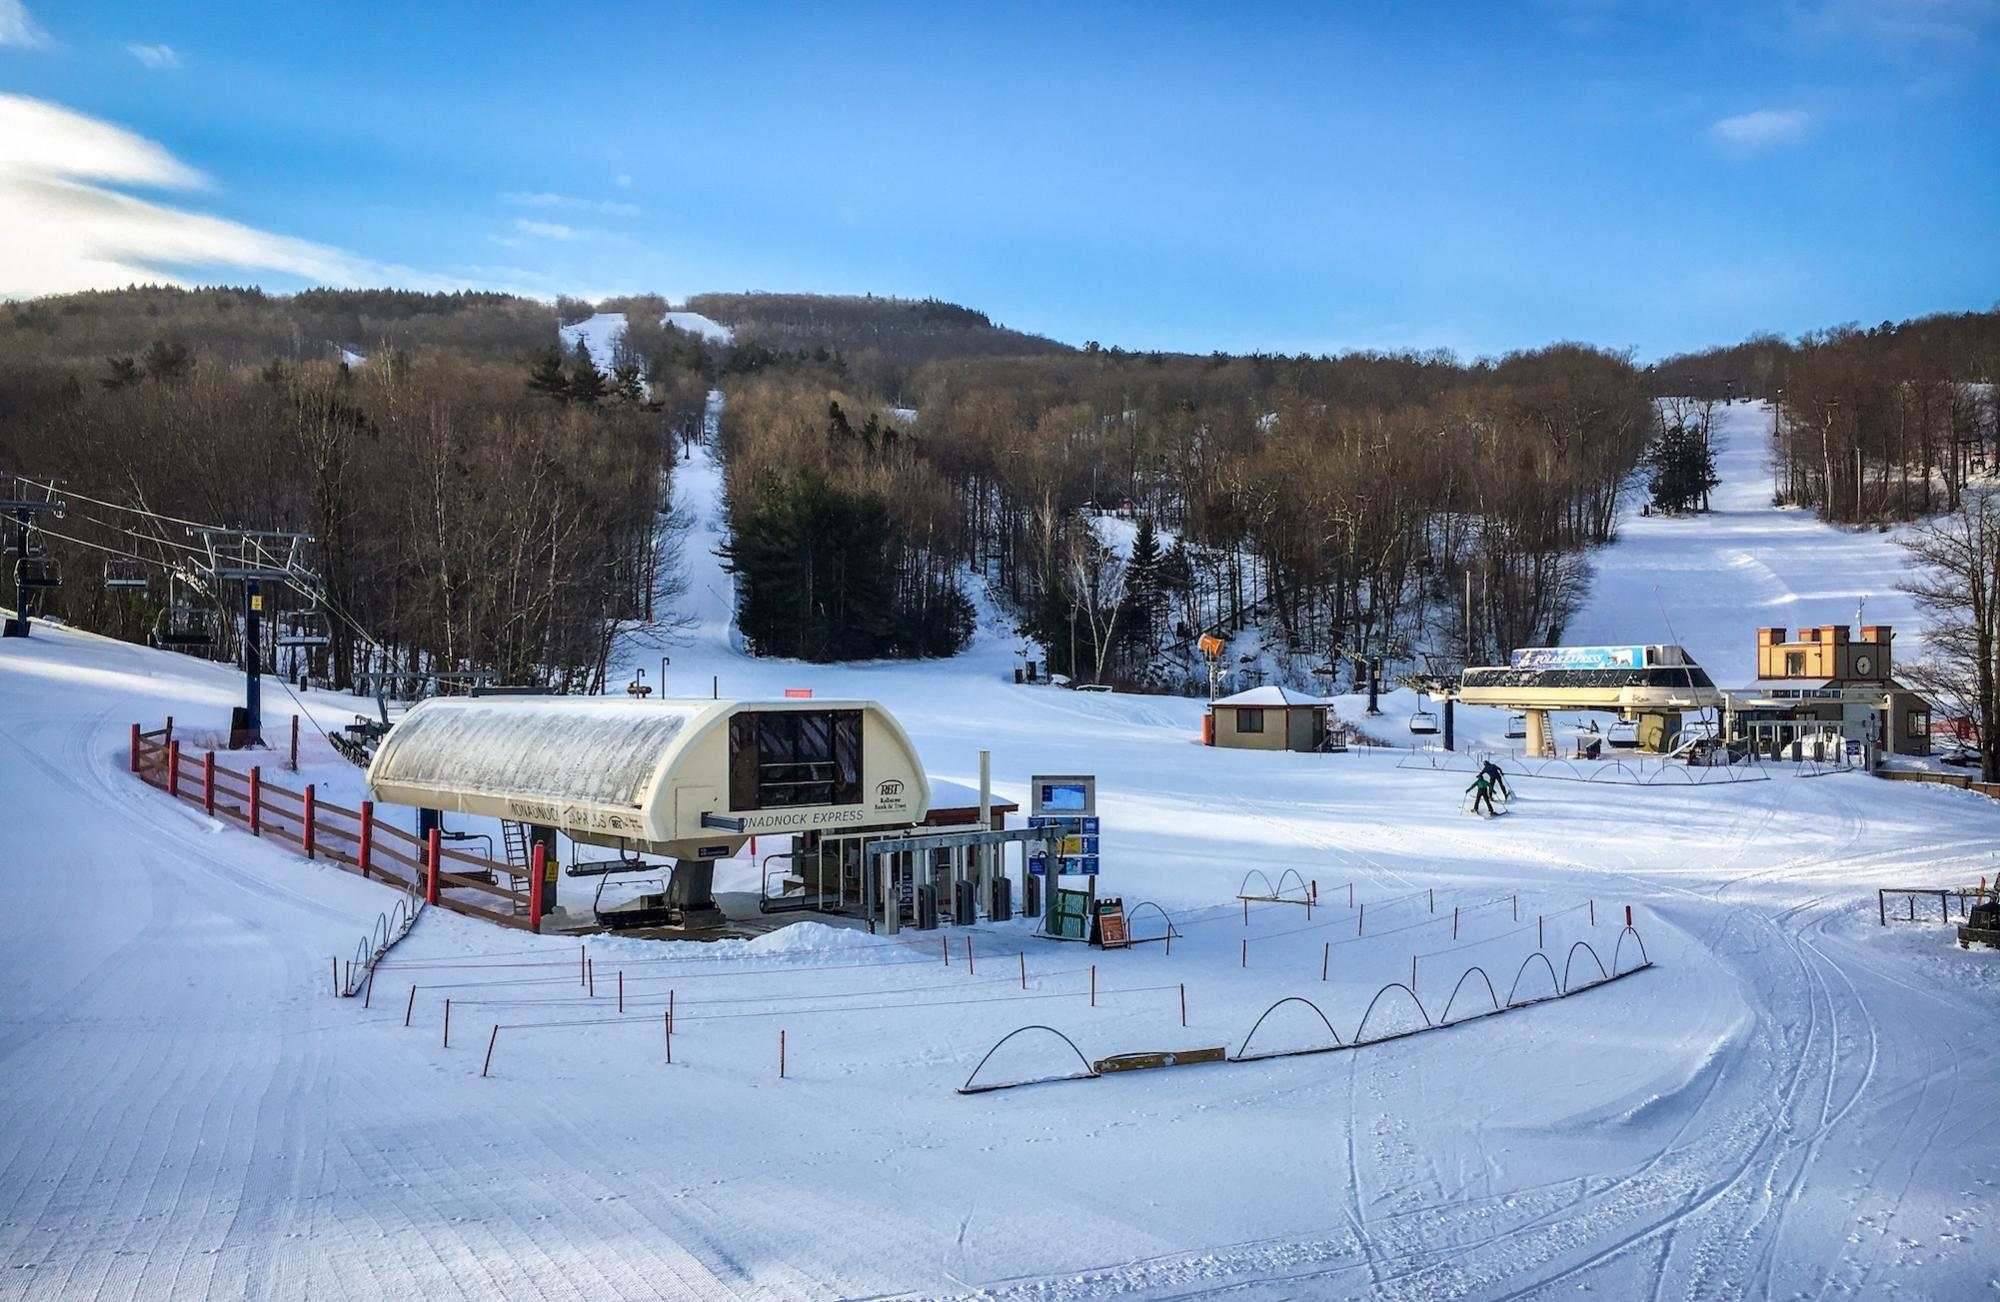 Wachusett Mountain covered in snow (Courtesy of Wachusett Mountain)